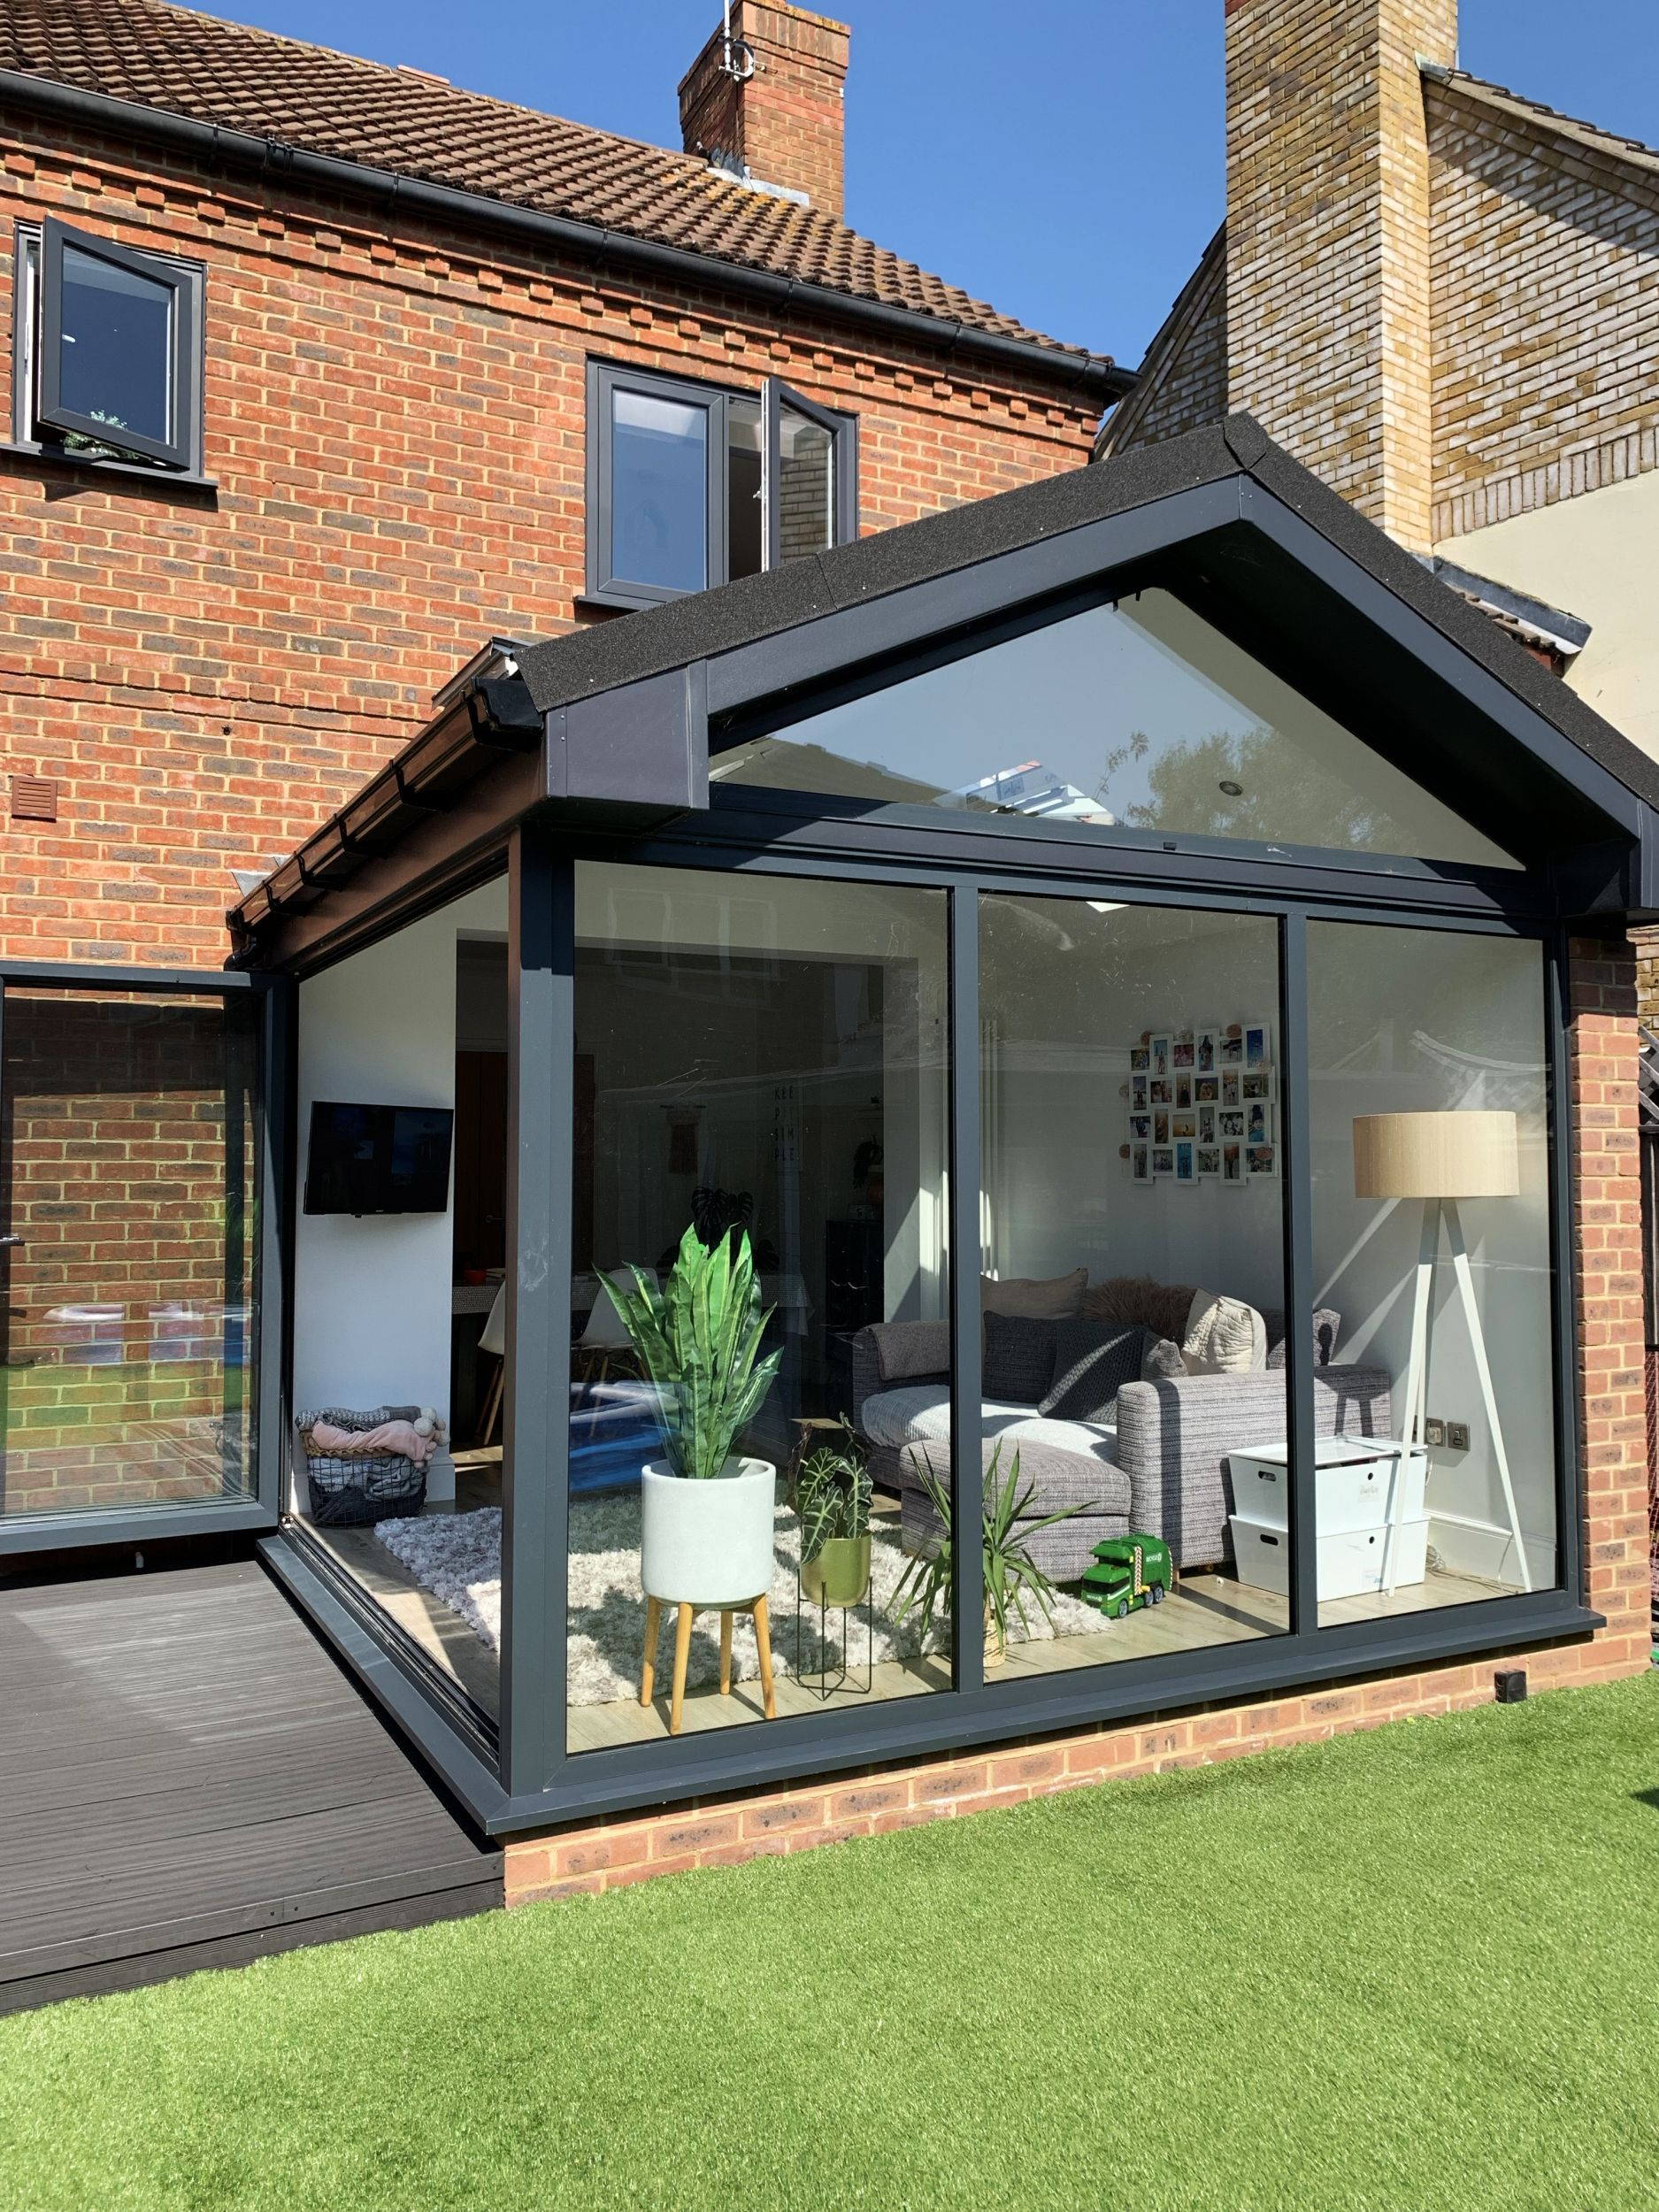 Pin On Home Exterior House Renovation House Extension Plans Small House Extensions Backyard house extension ideas